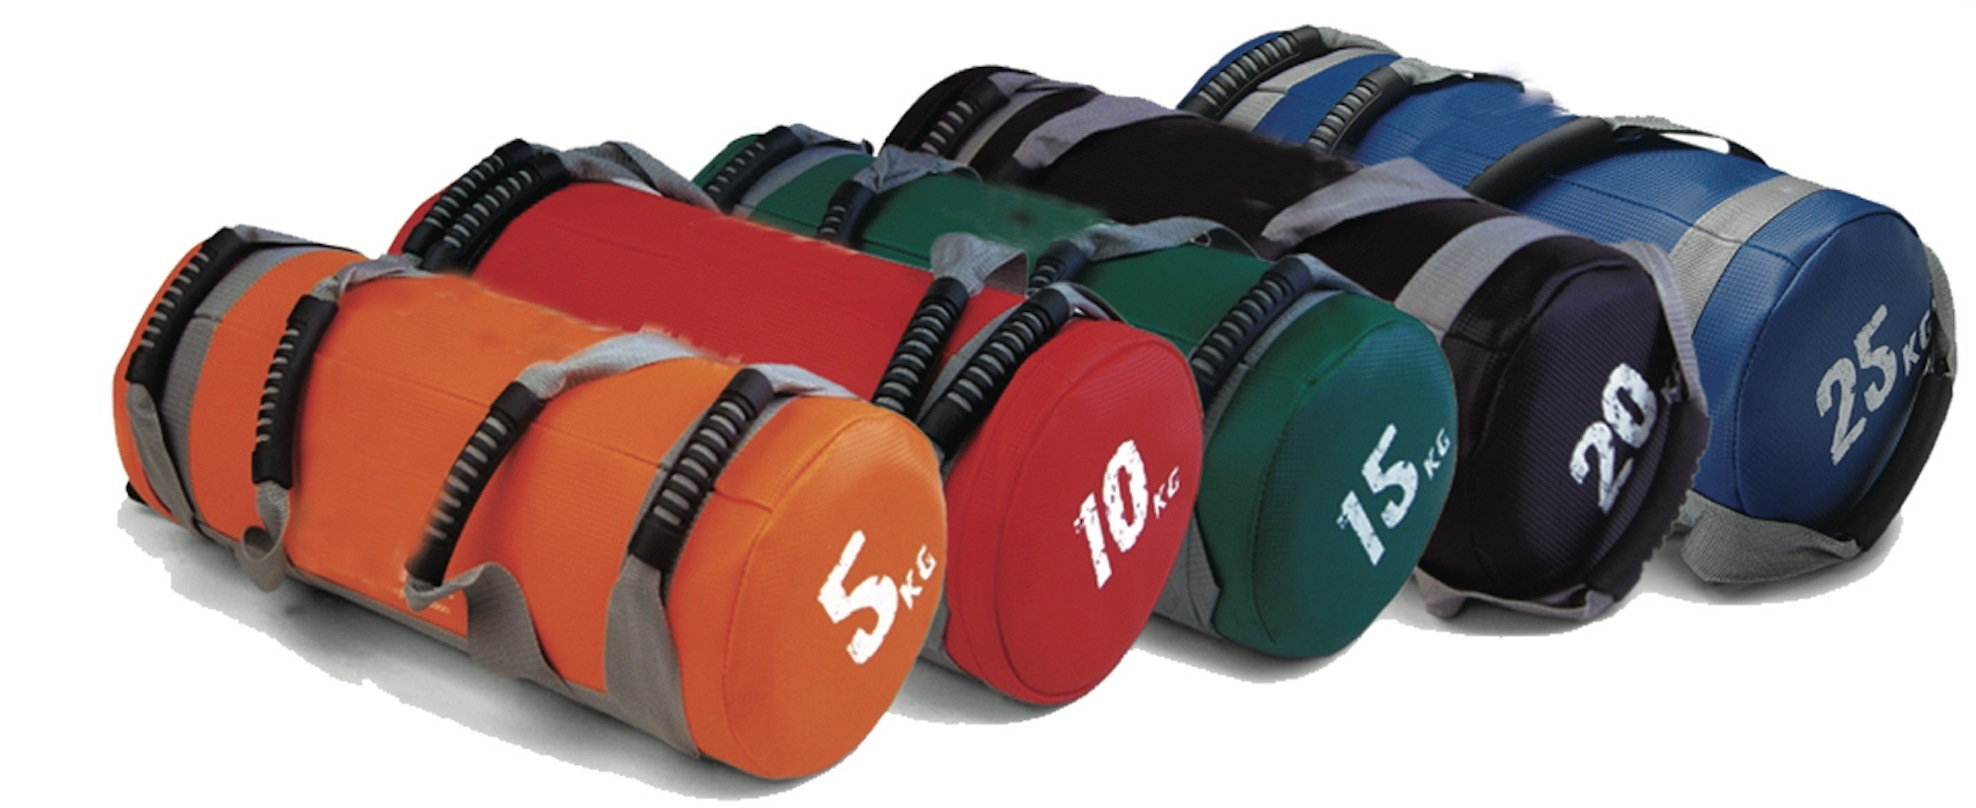 Weight Bag Fitness Strength Training Gym Sand